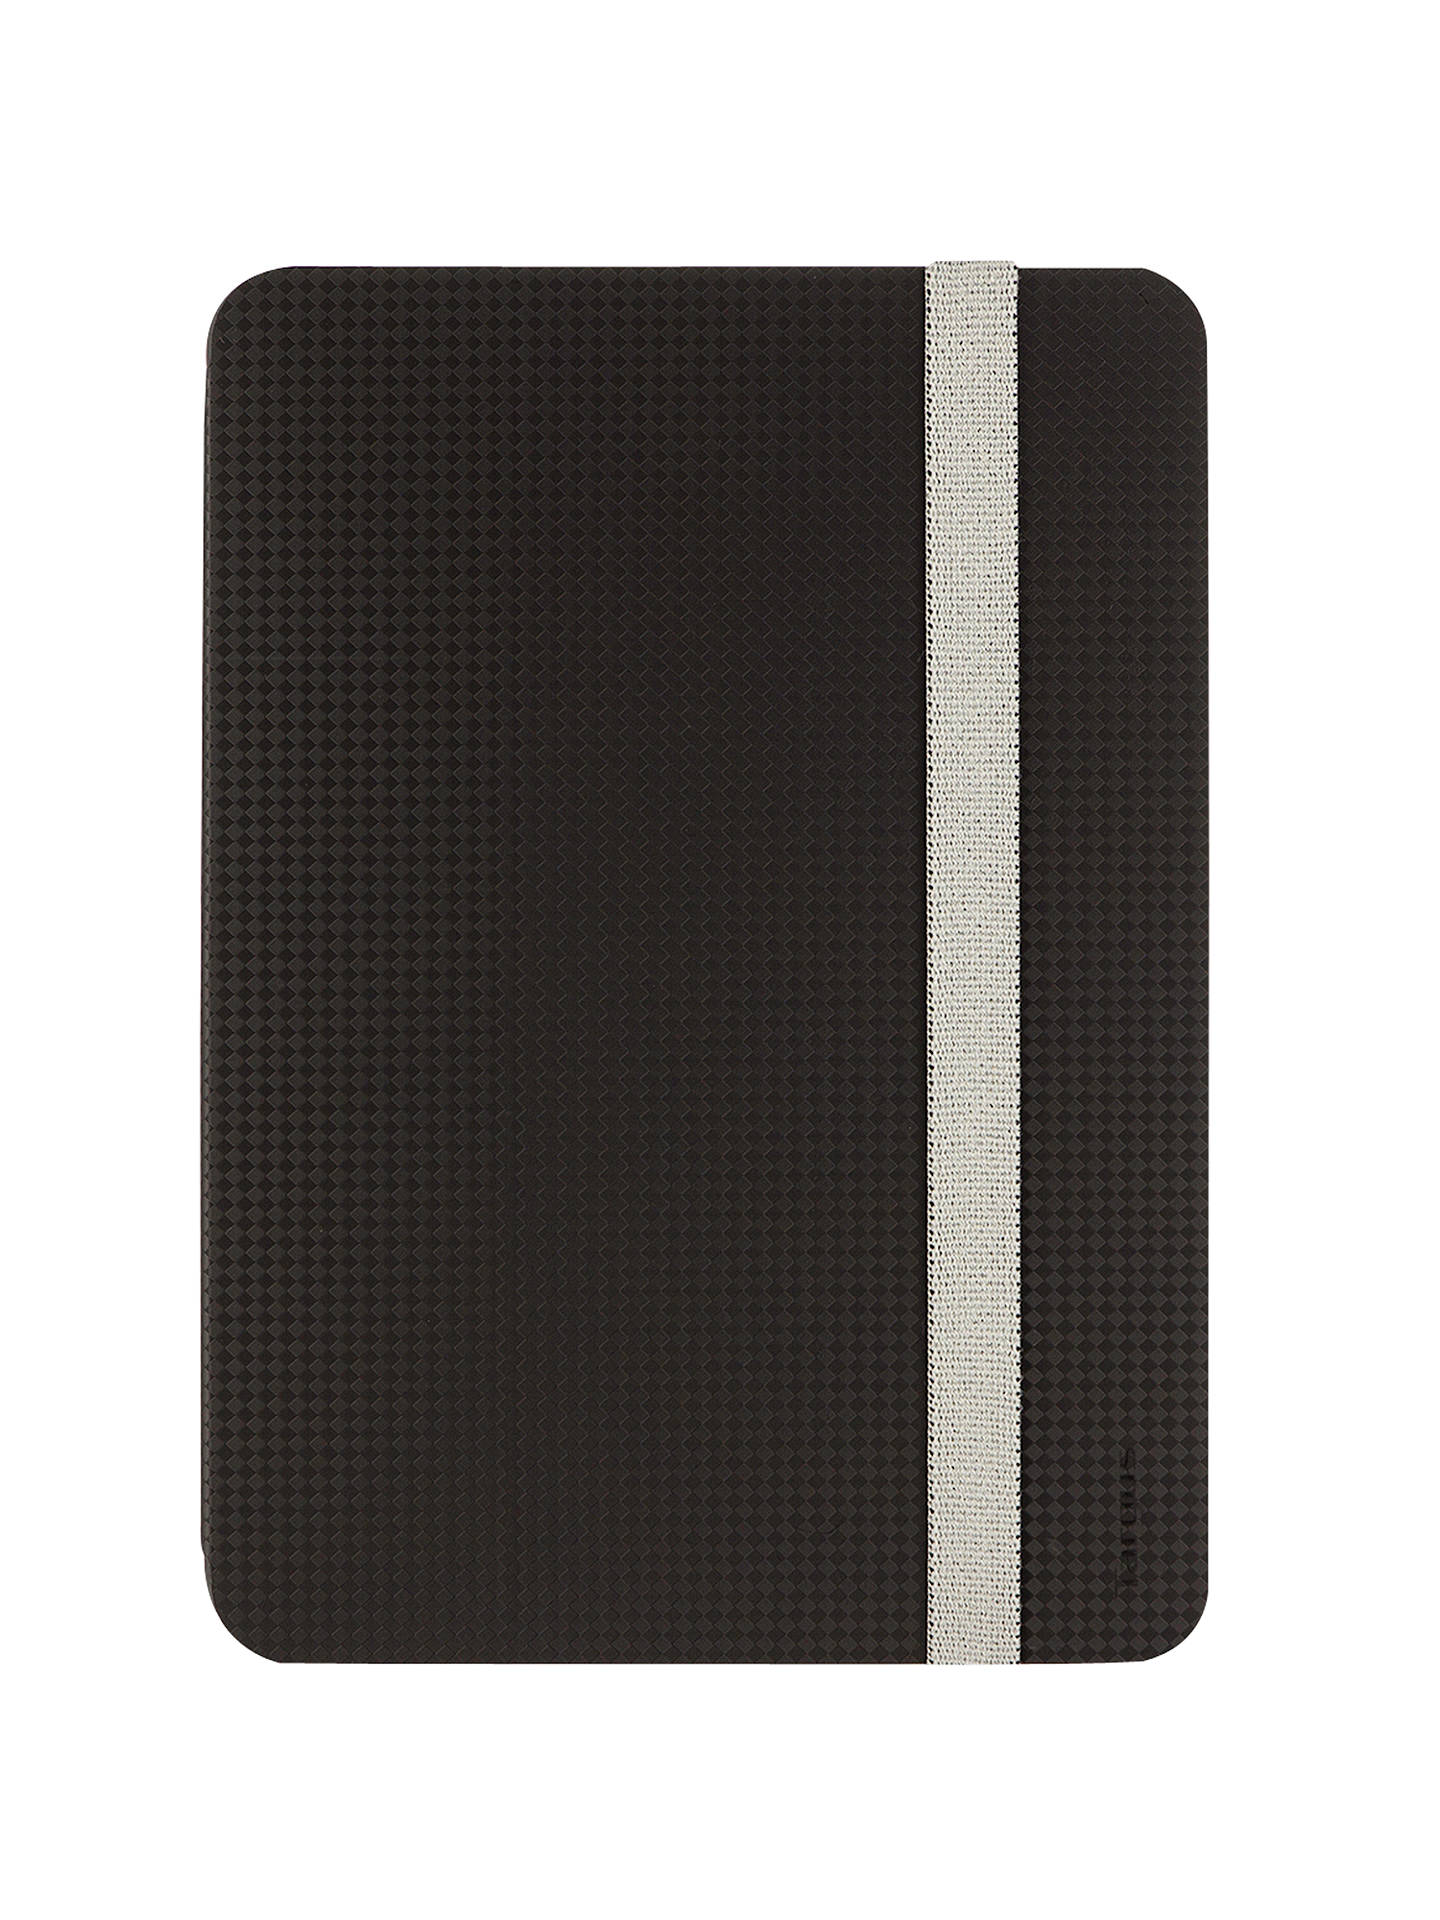 "BuyTargus Click-In Case with Auto Wake/Sleep for 9.7"" iPad Pro, iPad Air 2 and 1, Black Online at johnlewis.com"